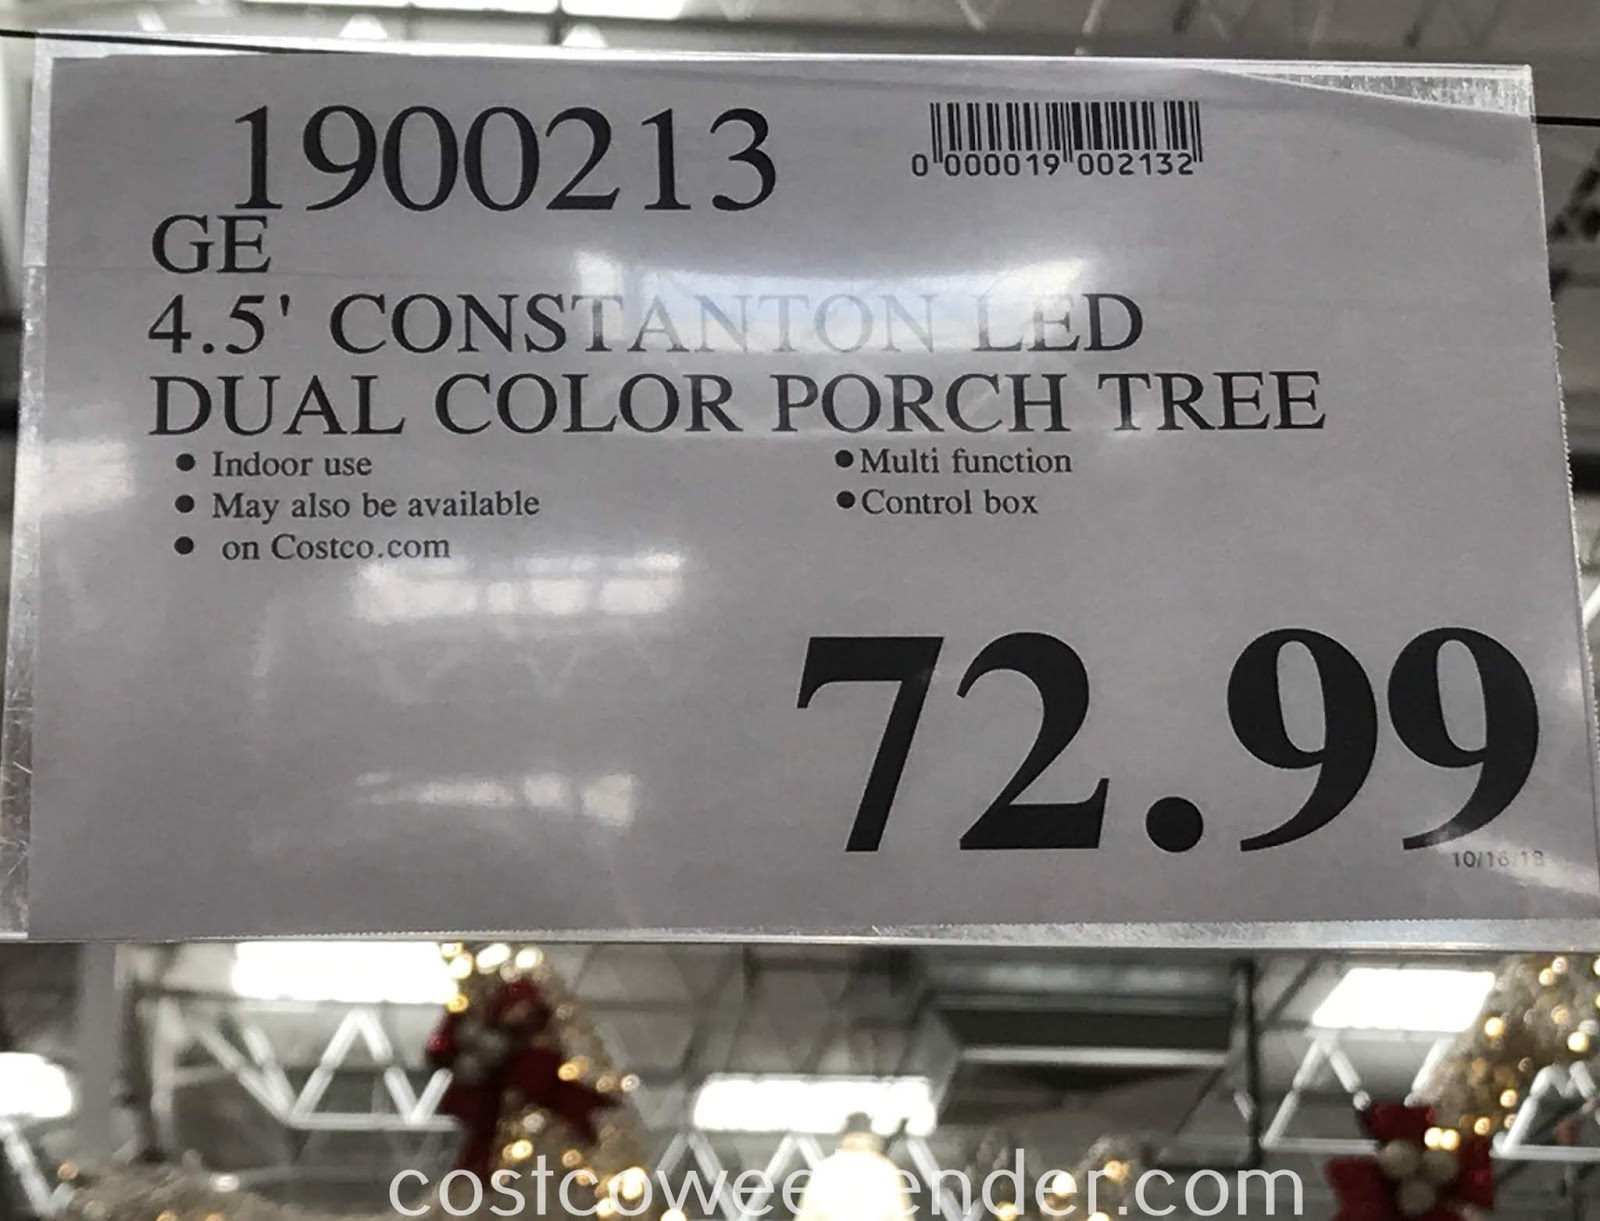 Costco 1900213 - Deal for the GE Just Cut Norway Spruce at Costco